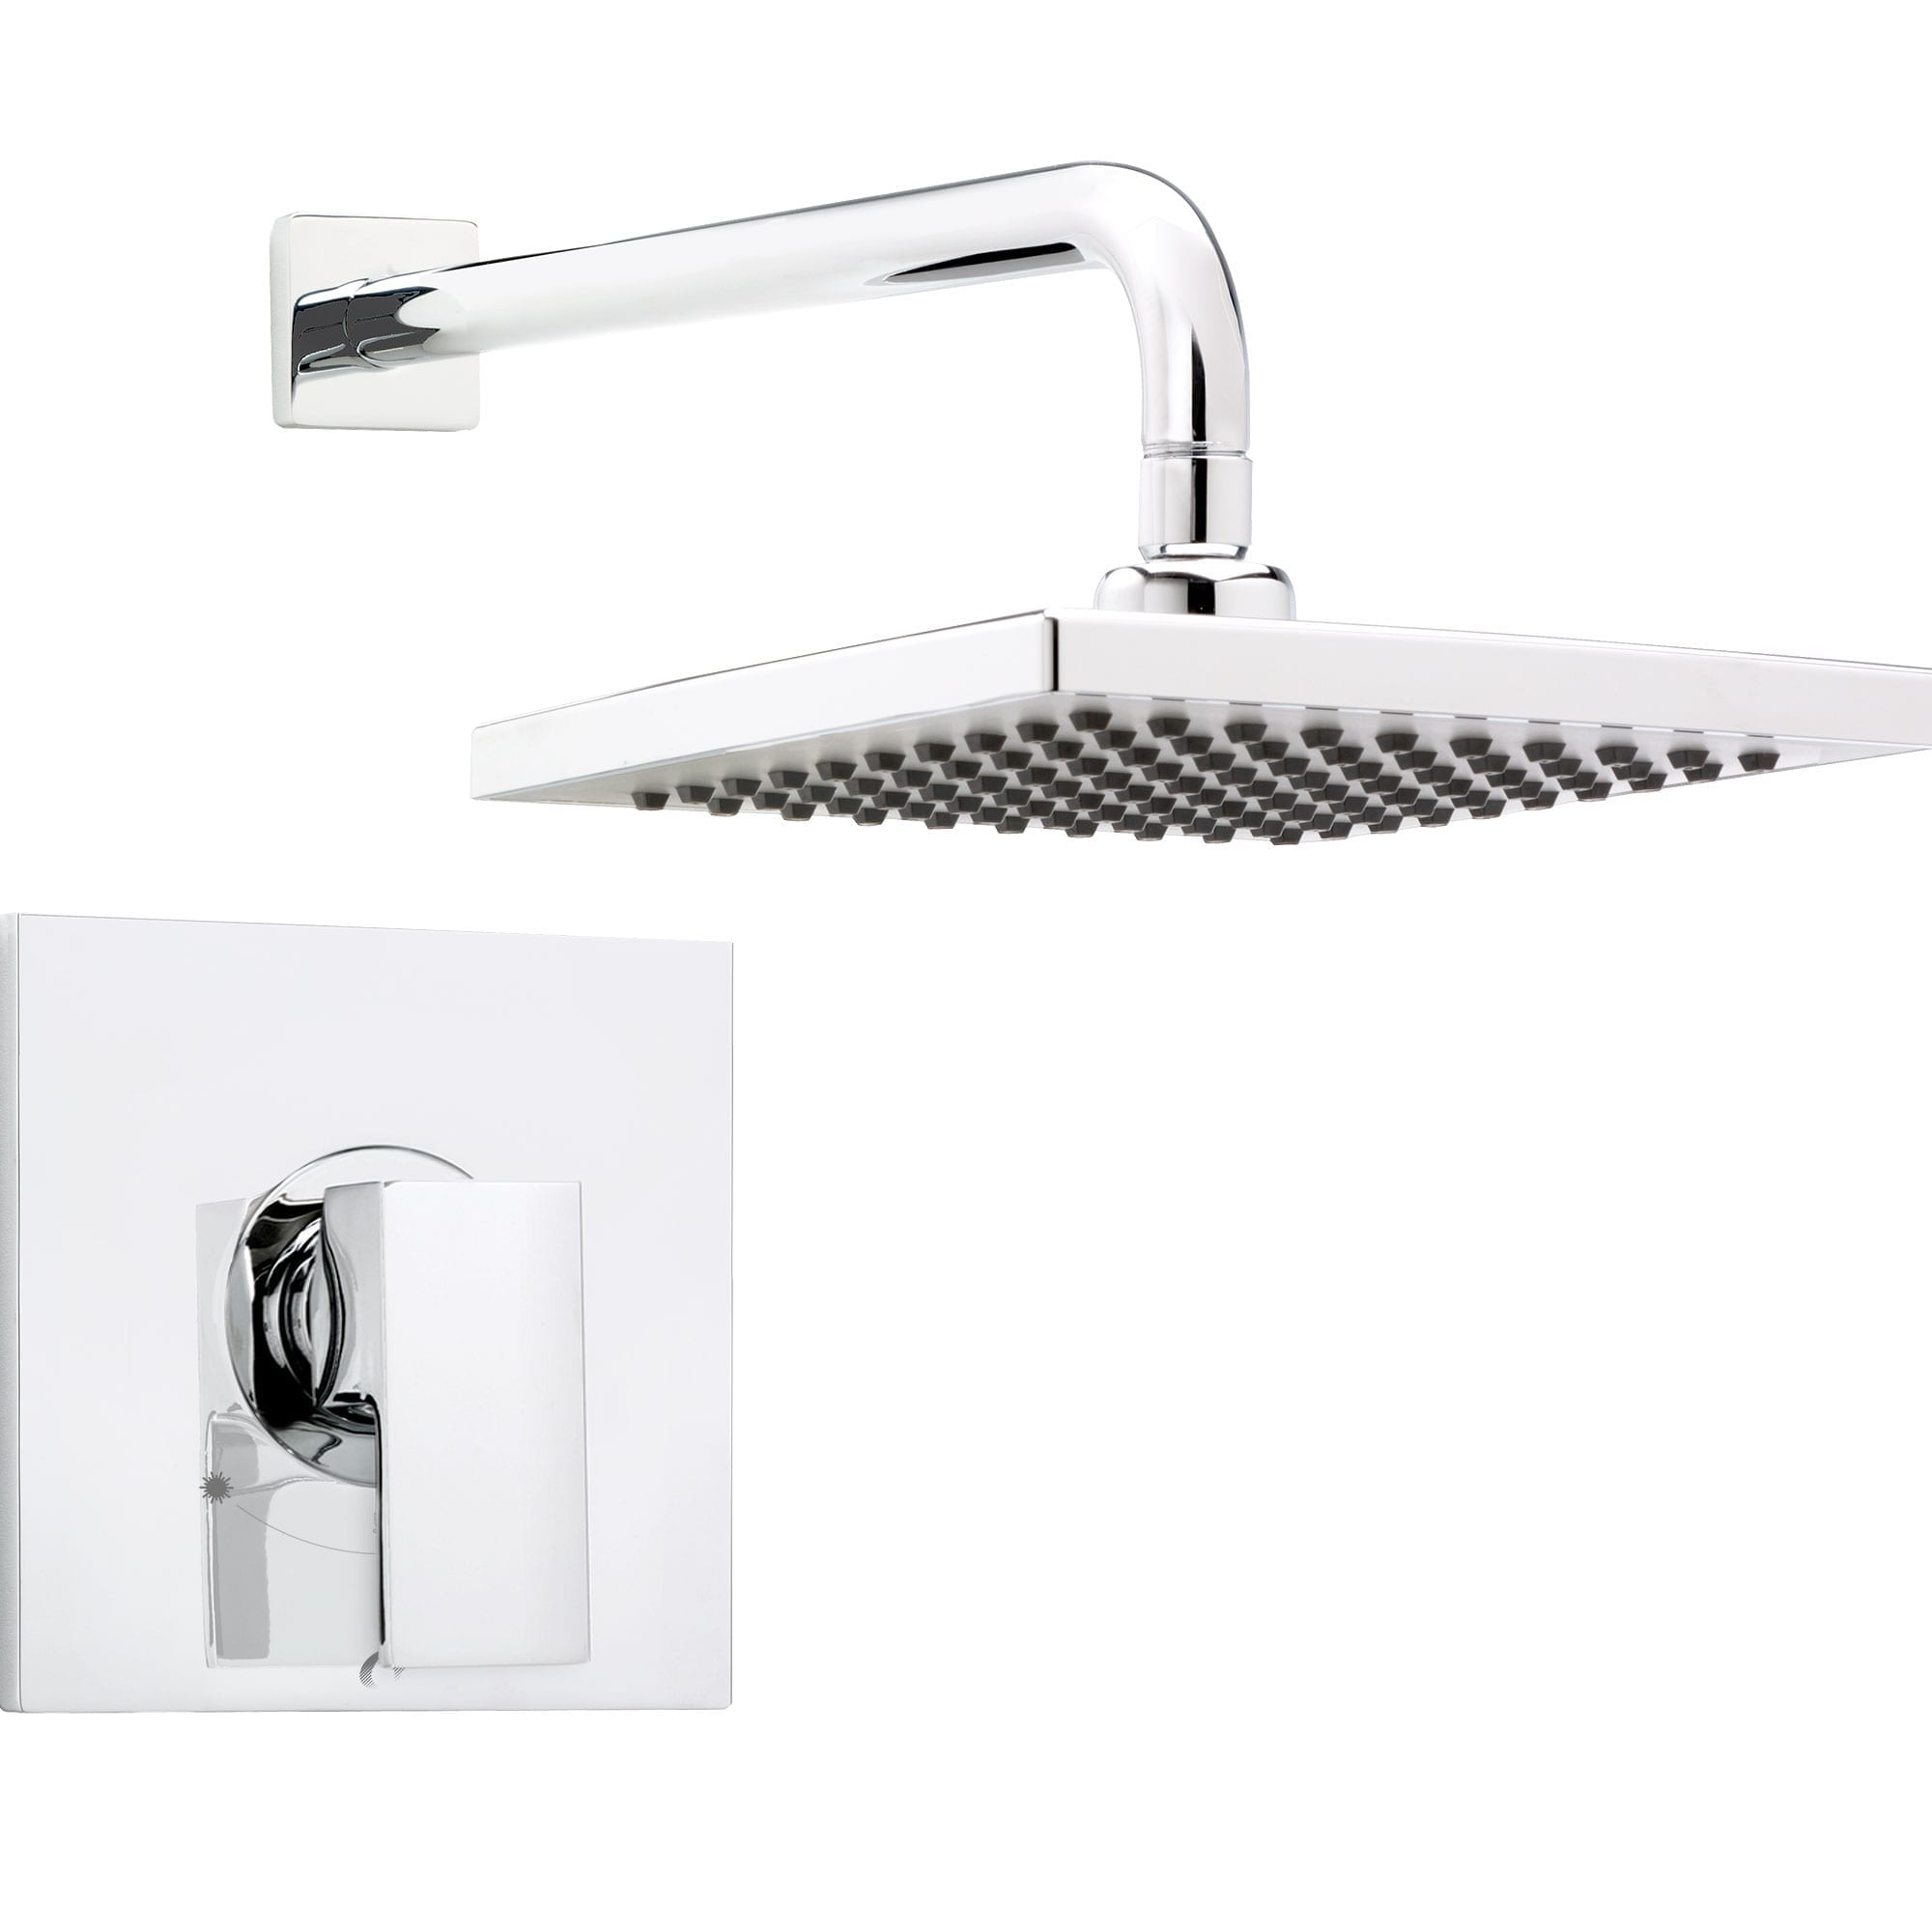 Shower Faucet Trim For Pressure Balanced Valve With Volume Control